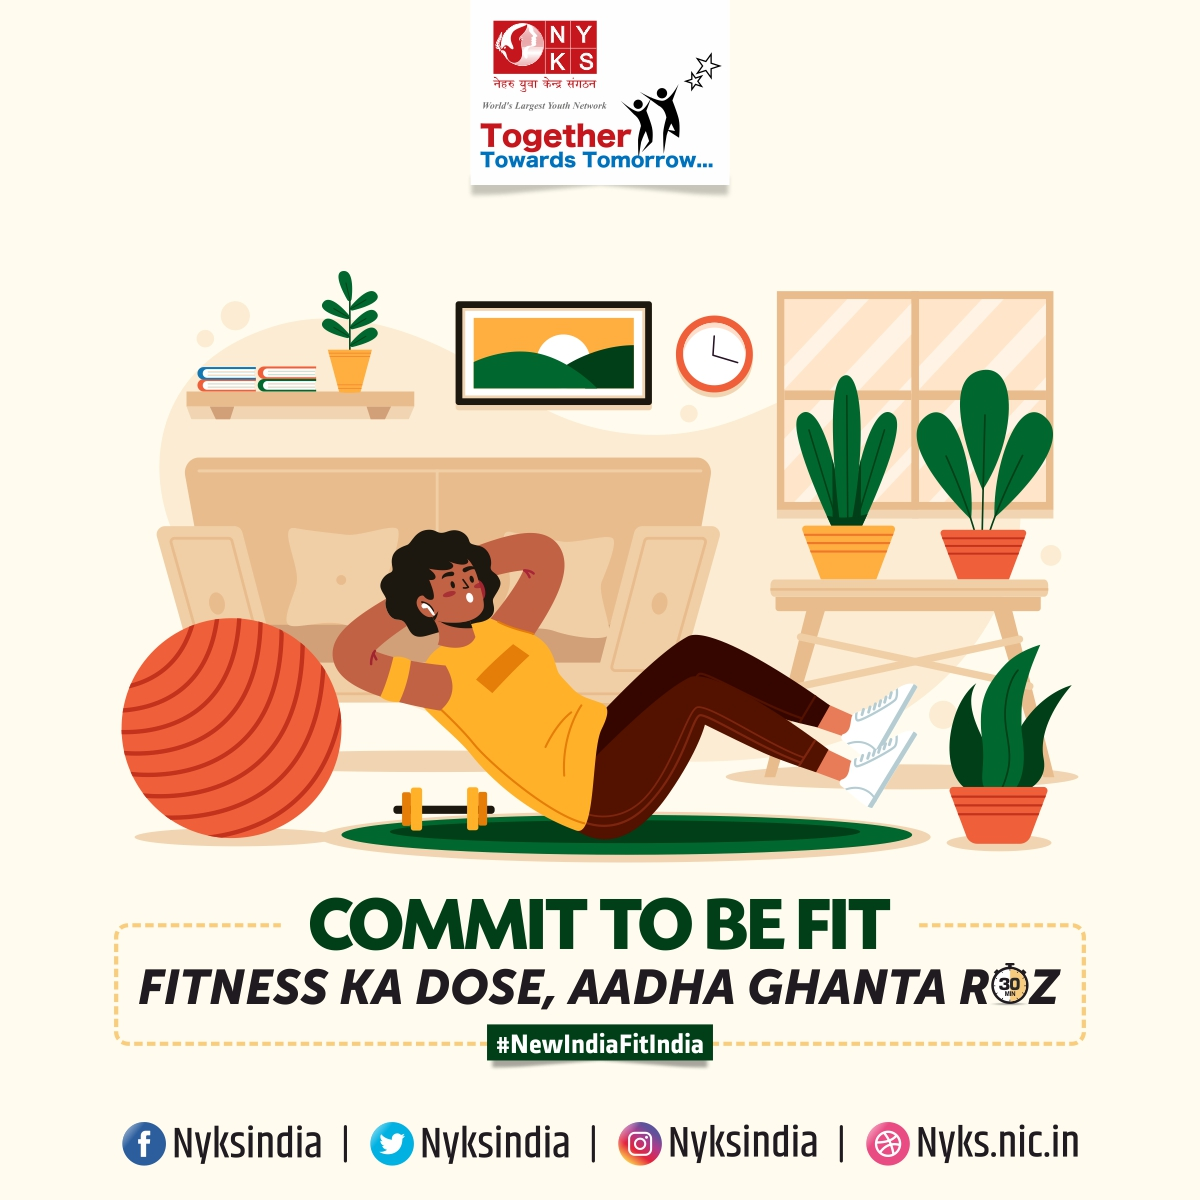 Are you committed to staying fit? Fitness ka dose, aadha ghanta roz! #NewIndiaFitIndia   #FitnessMotivation   @KirenRijiju | @YASMinistry | @RijijuOffice | @PMOIndia | @FitIndiaOff